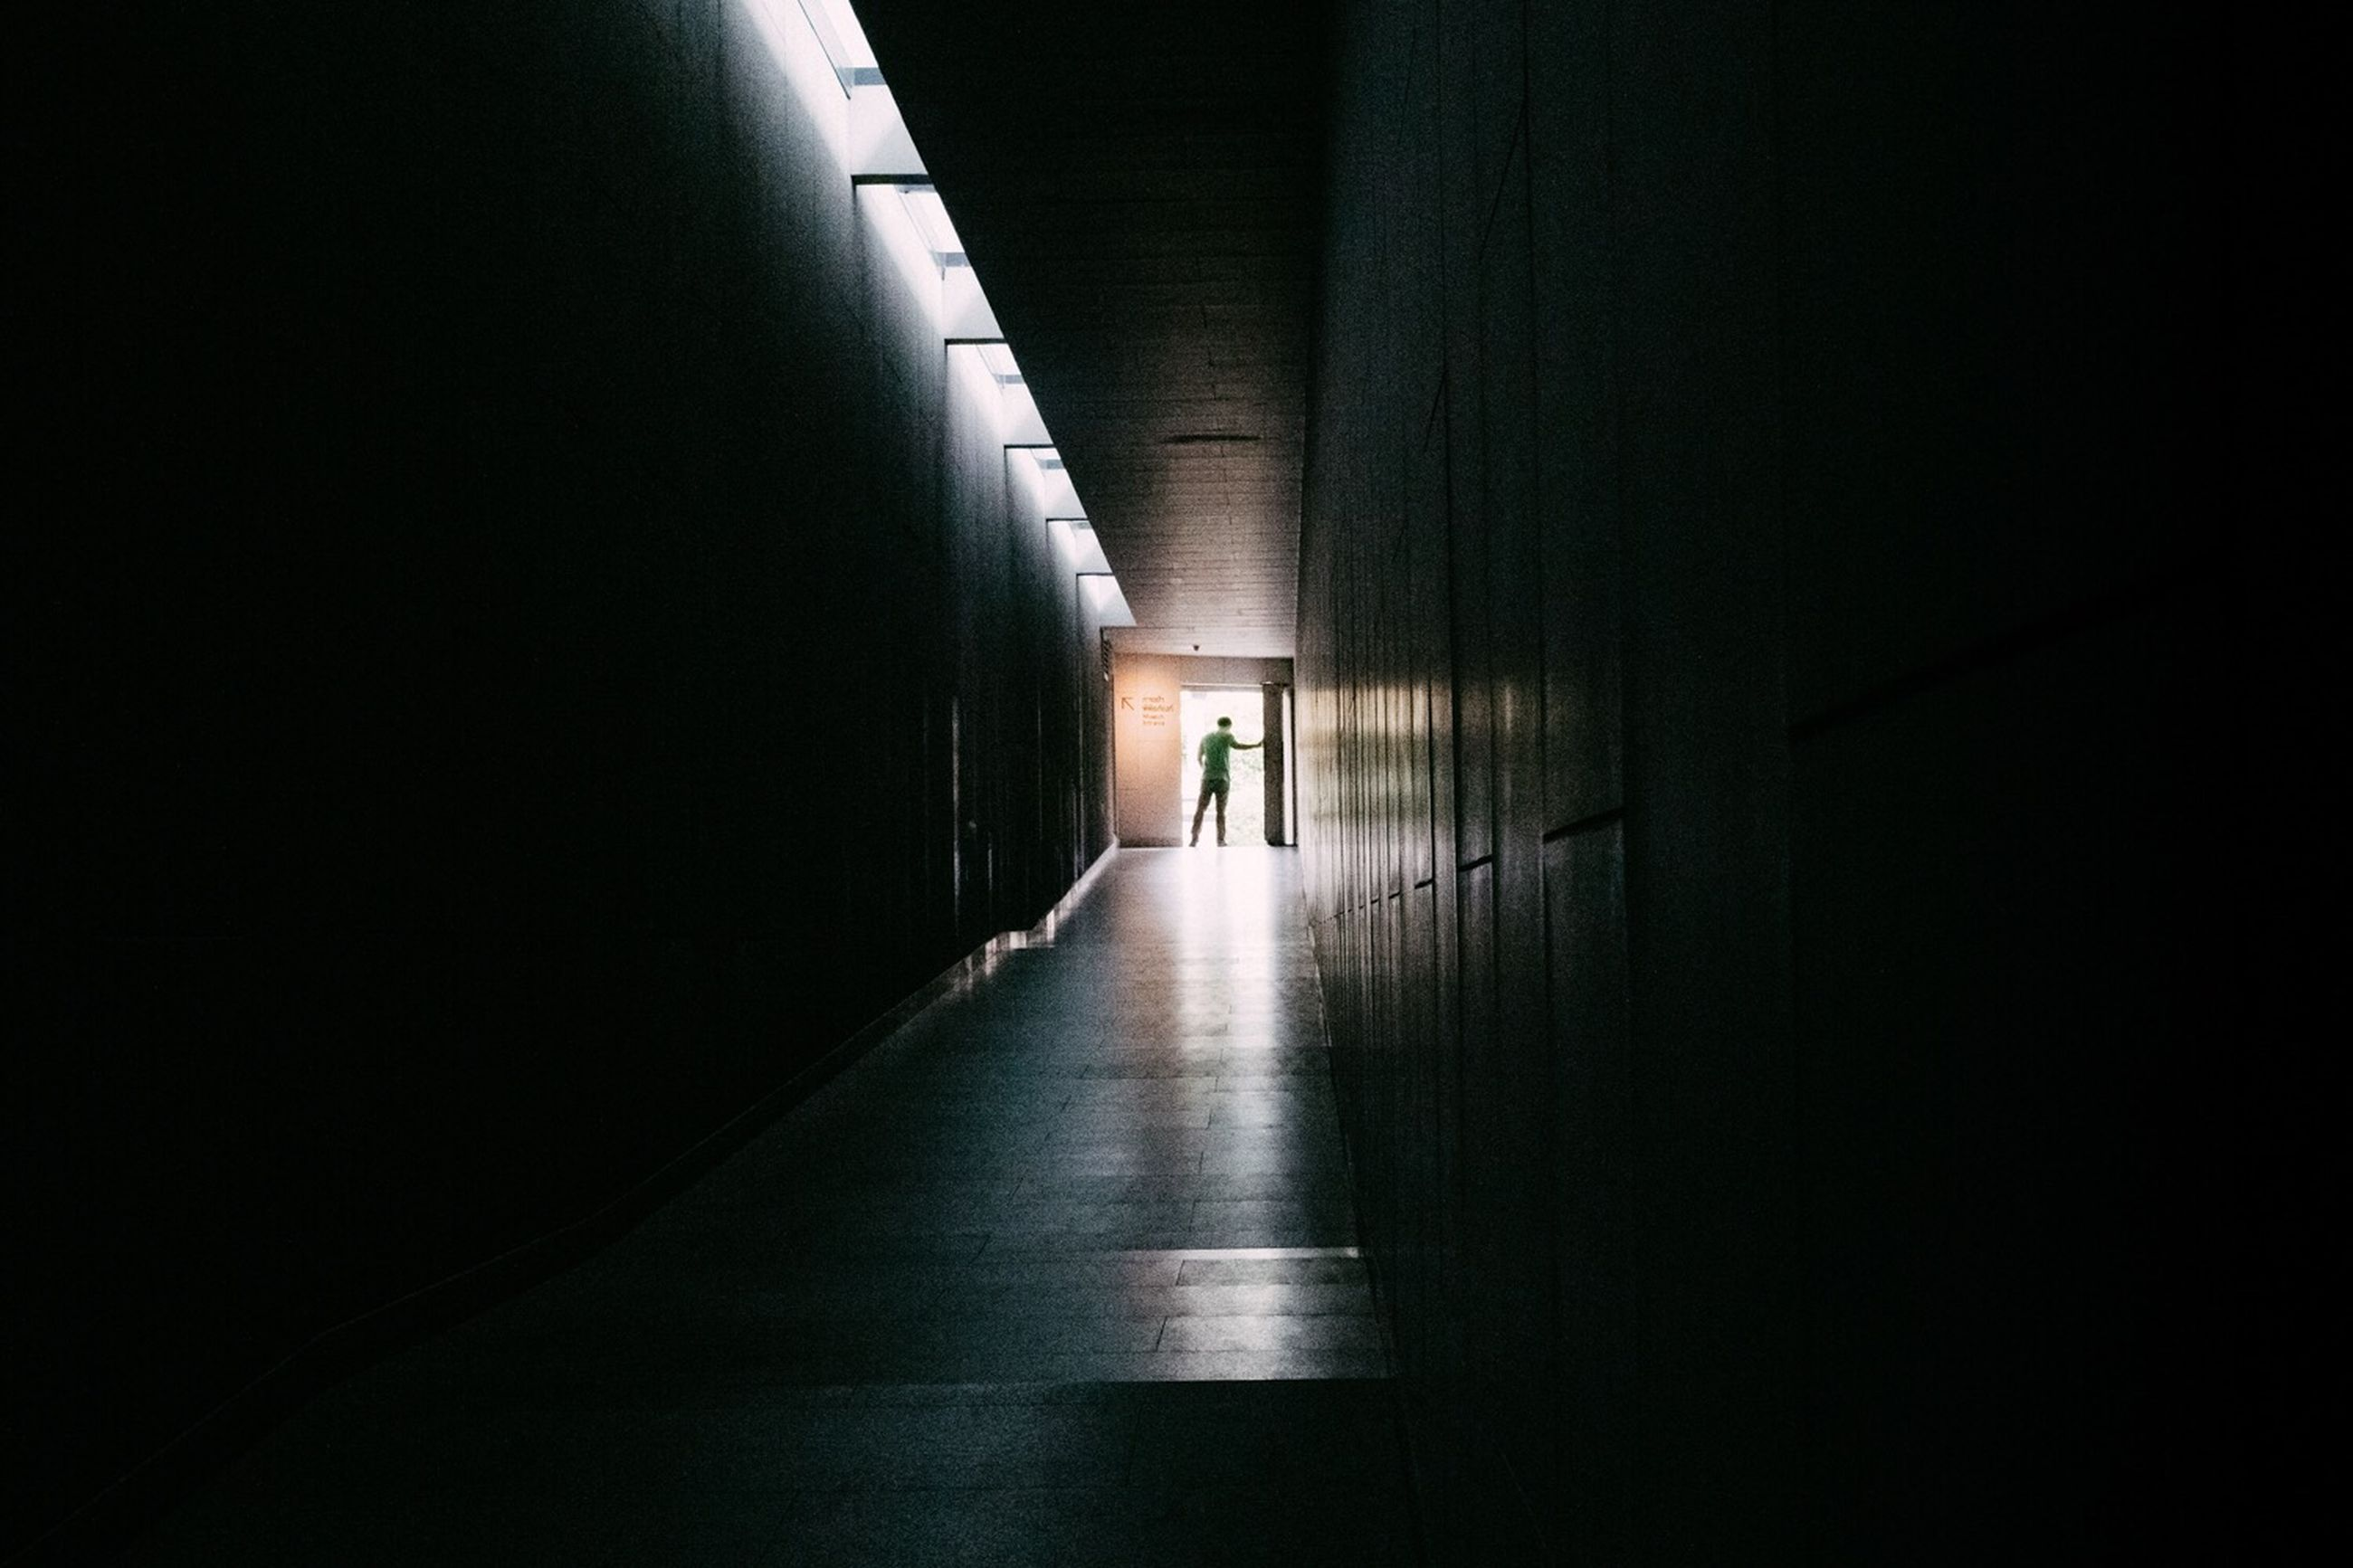 direction, the way forward, architecture, indoors, arcade, corridor, illuminated, built structure, building, tunnel, wall - building feature, empty, dark, lighting equipment, copy space, no people, entrance, diminishing perspective, flooring, wall, light at the end of the tunnel, ceiling, underpass